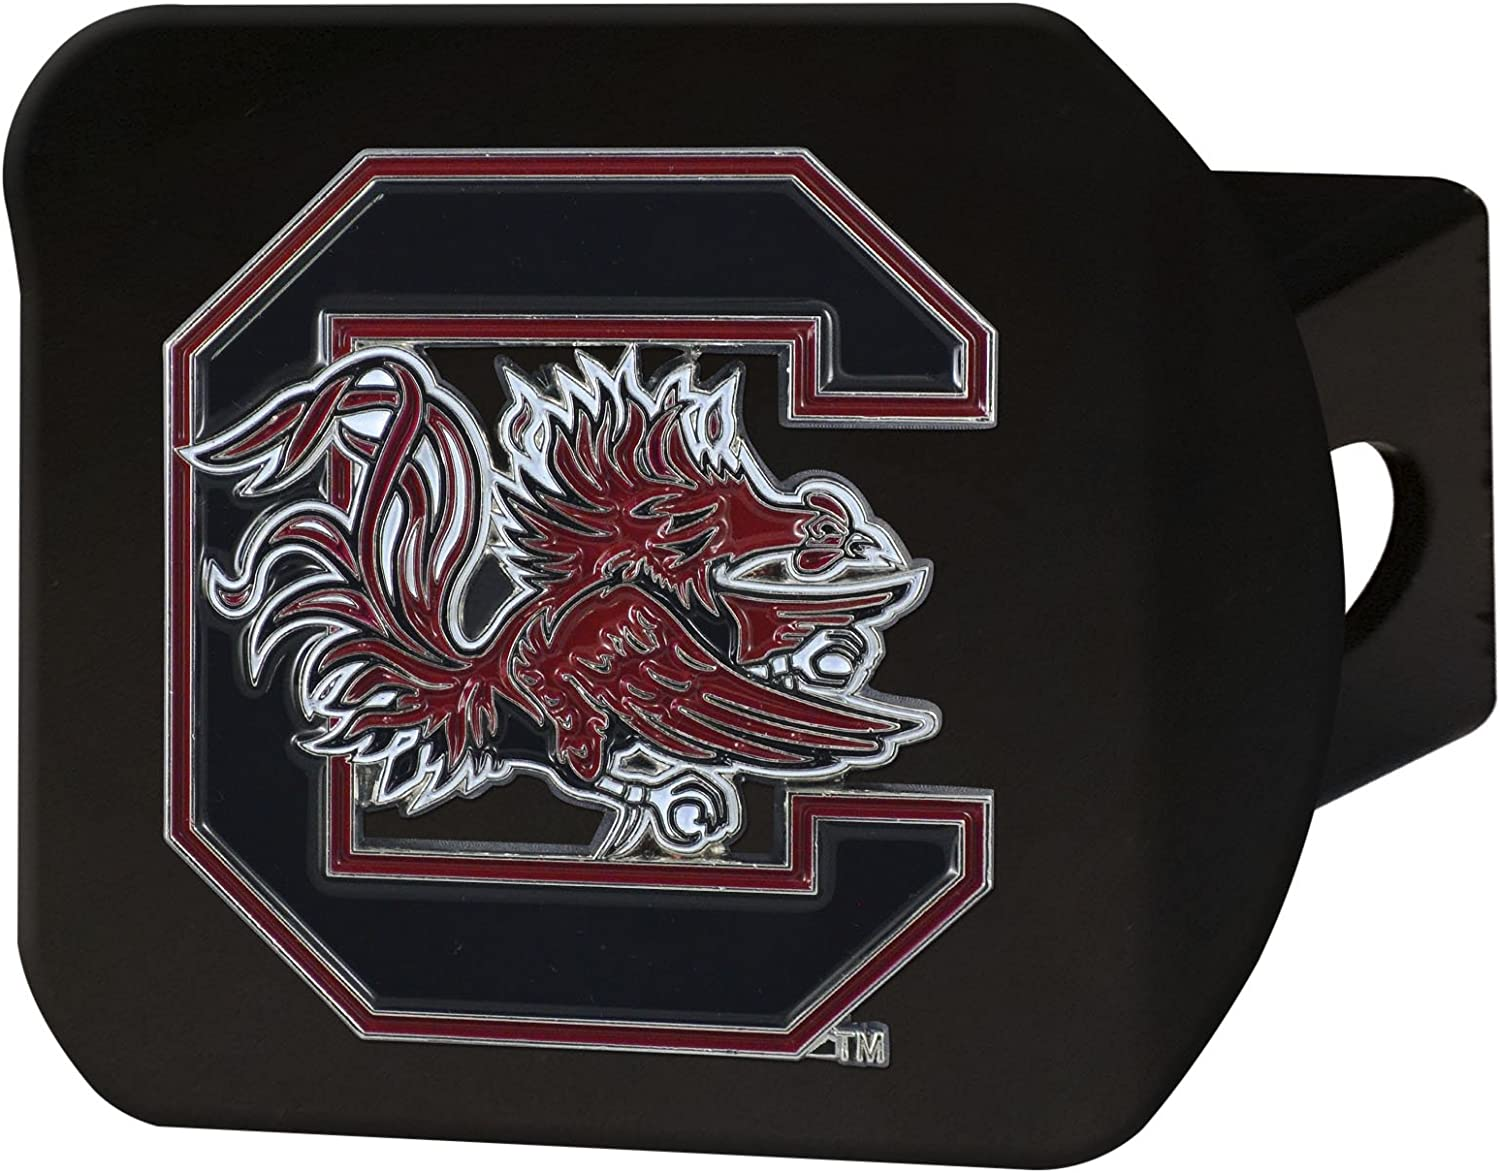 Black Team Color FANMATS NCAA South Carolina Fighting Gamecocks University of South Carolinacolor Hitch One Size